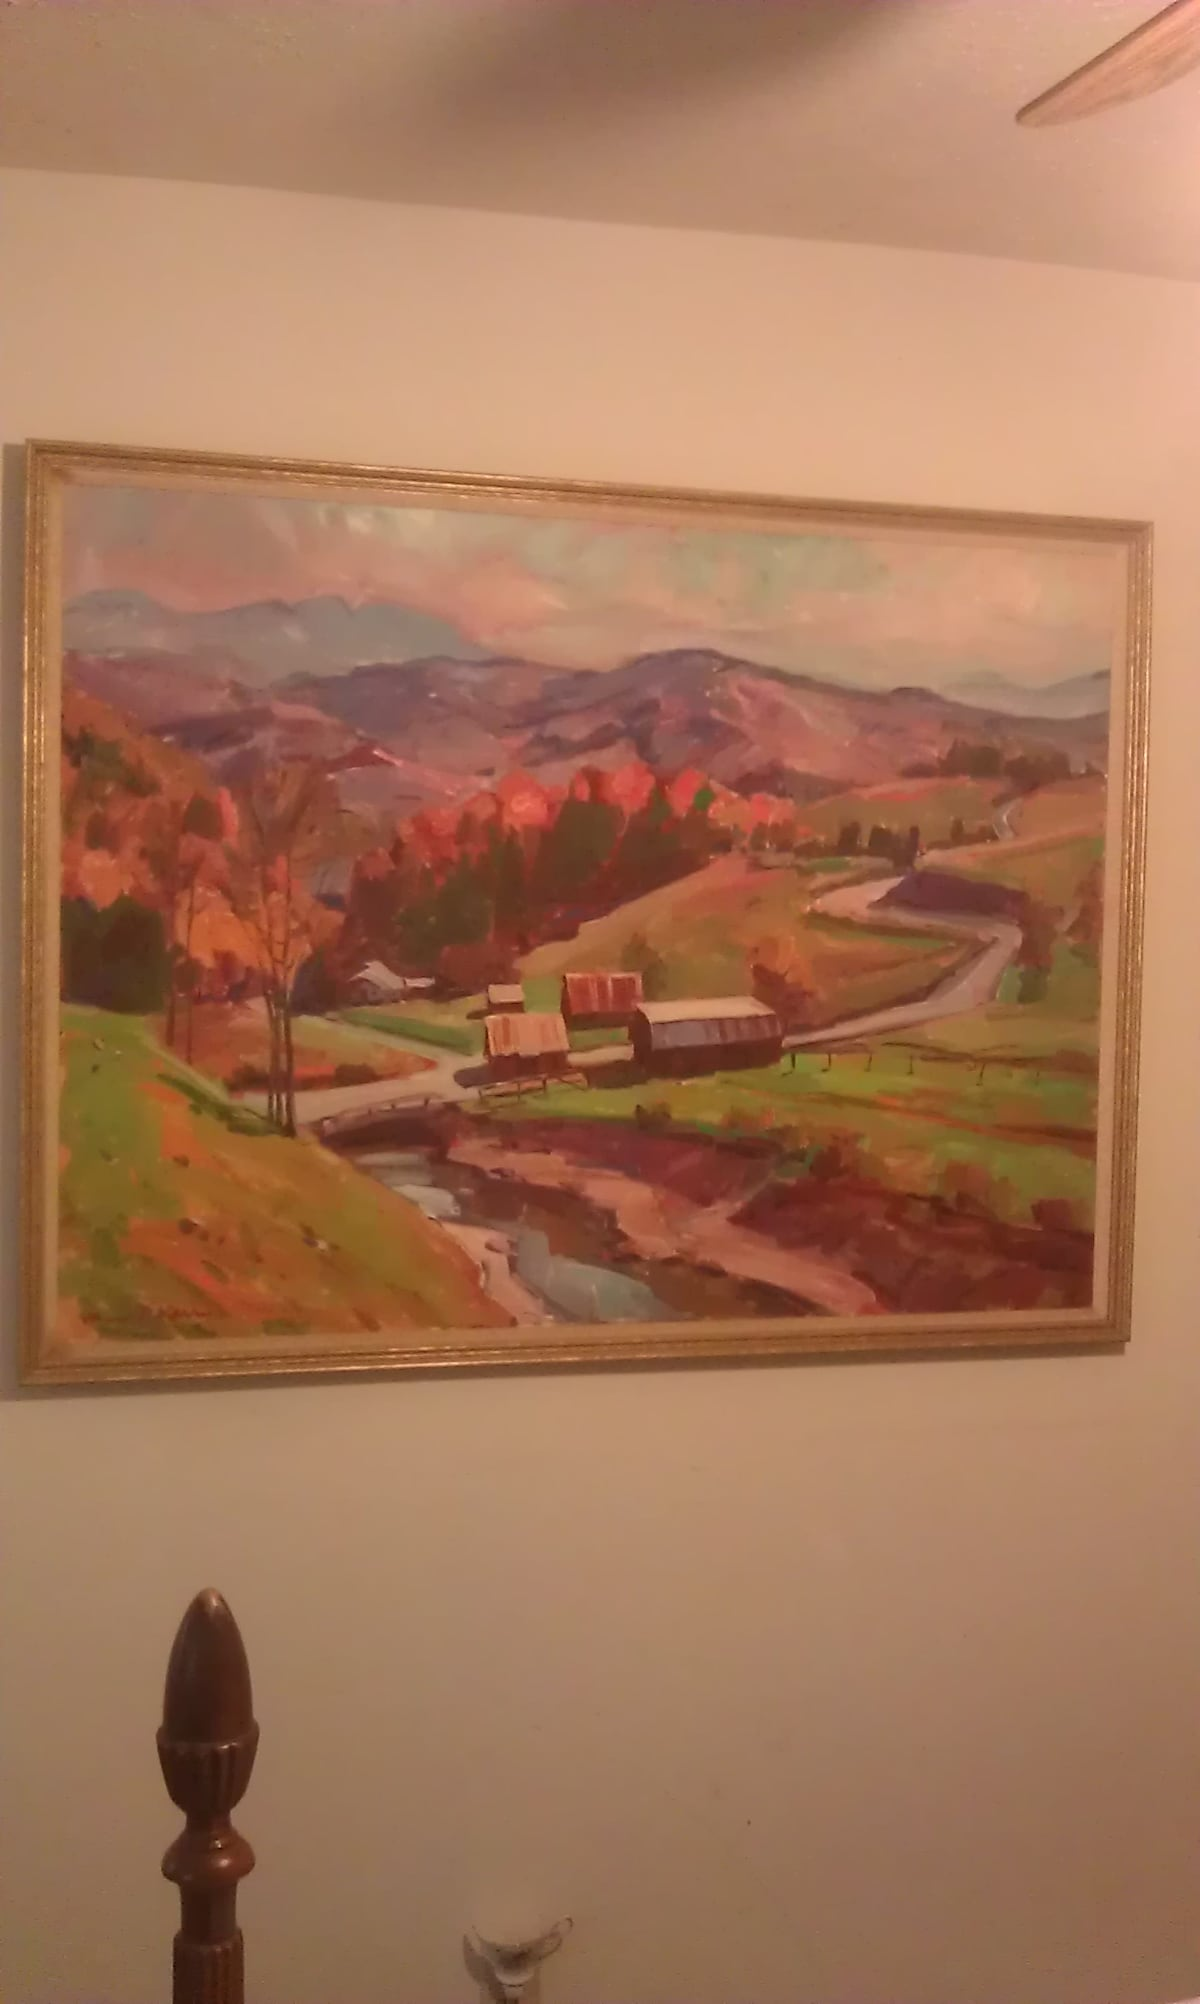 Framed original art by Boone artist, James Kerr -- the Mast Valley between Boone and Grandfather Mountain, NC